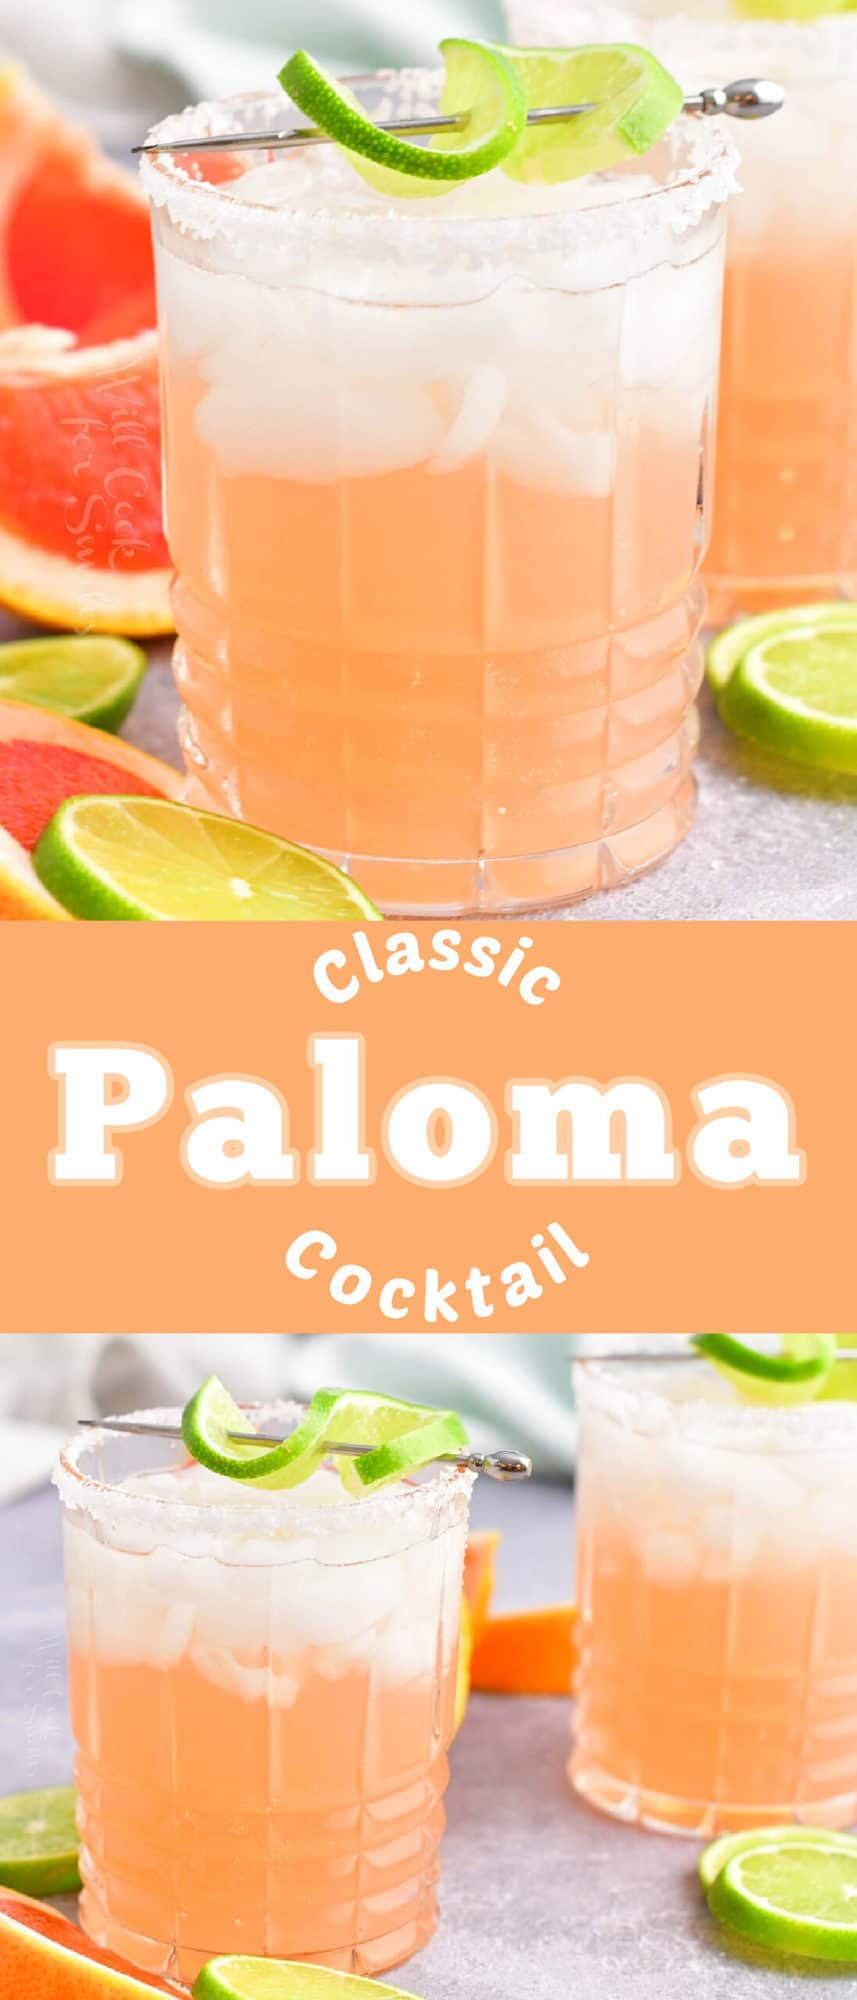 title collage with two images of Paloma cocktail in a glass with different angles